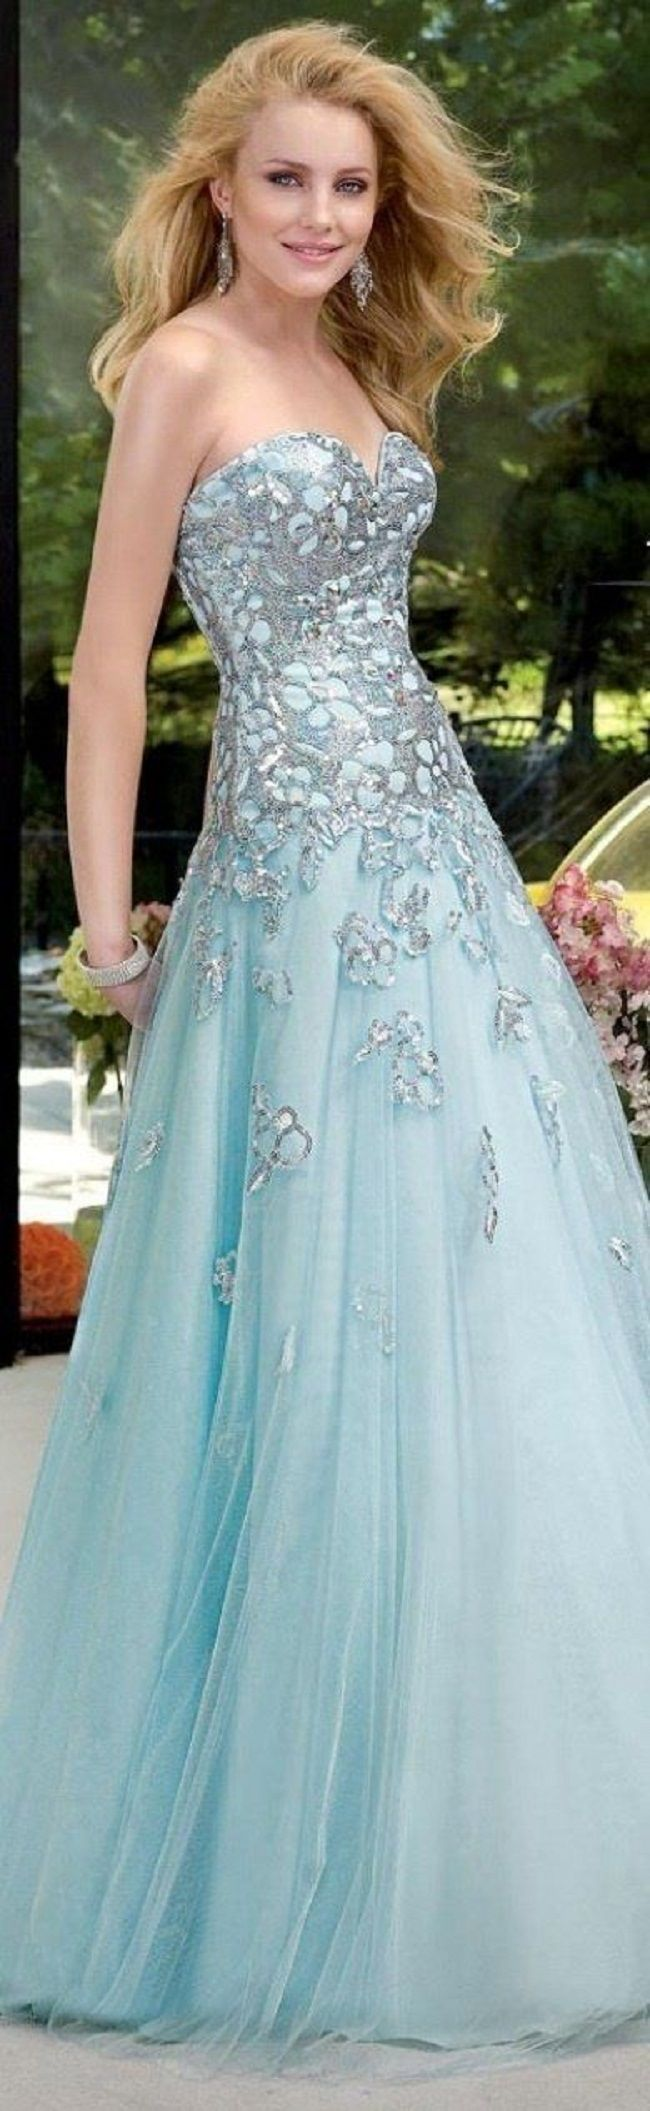 Amazing Short Sparkly Wedding Dresses Inspiration - All Wedding ...